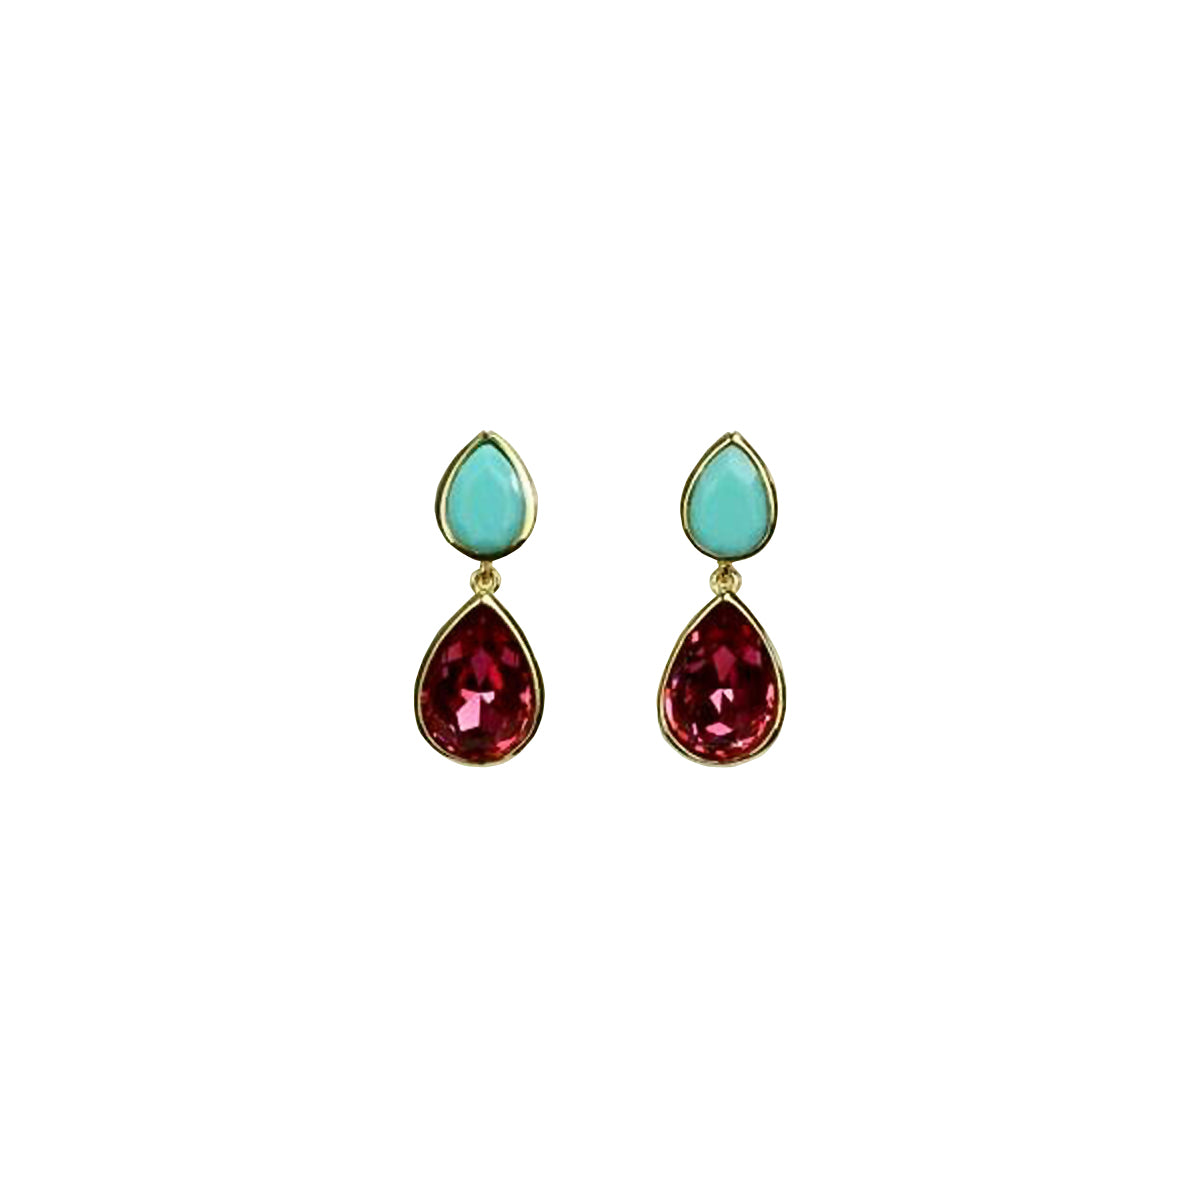 BONNIE EARRINGS -TURQUOISE / PINK